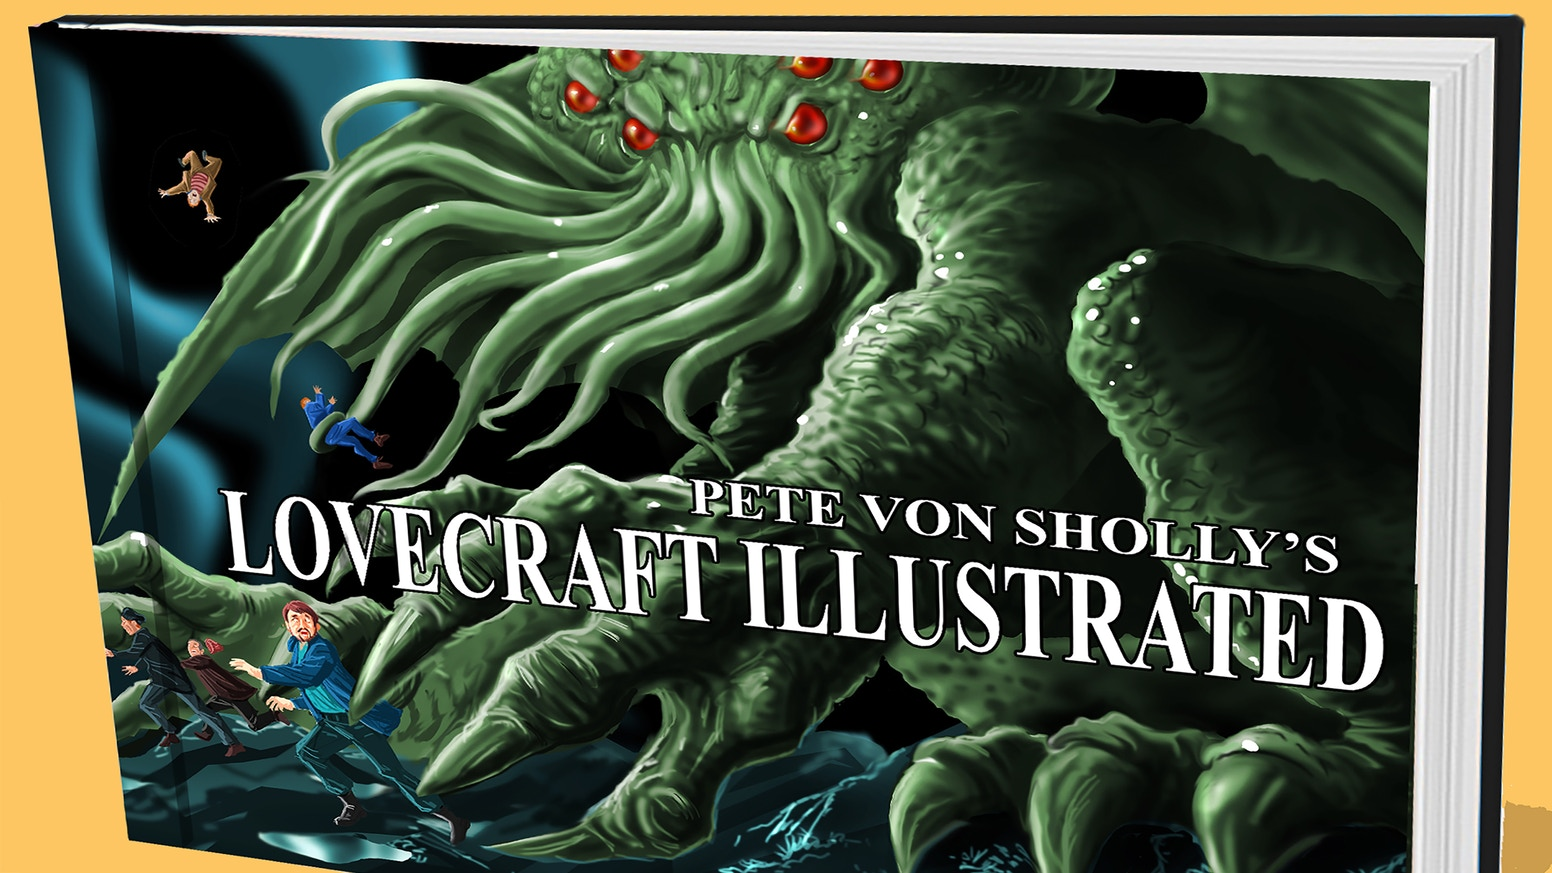 PETE VON SHOLLY'S LOVECRAFT ILLUSTRATED by Pete Von Sholly